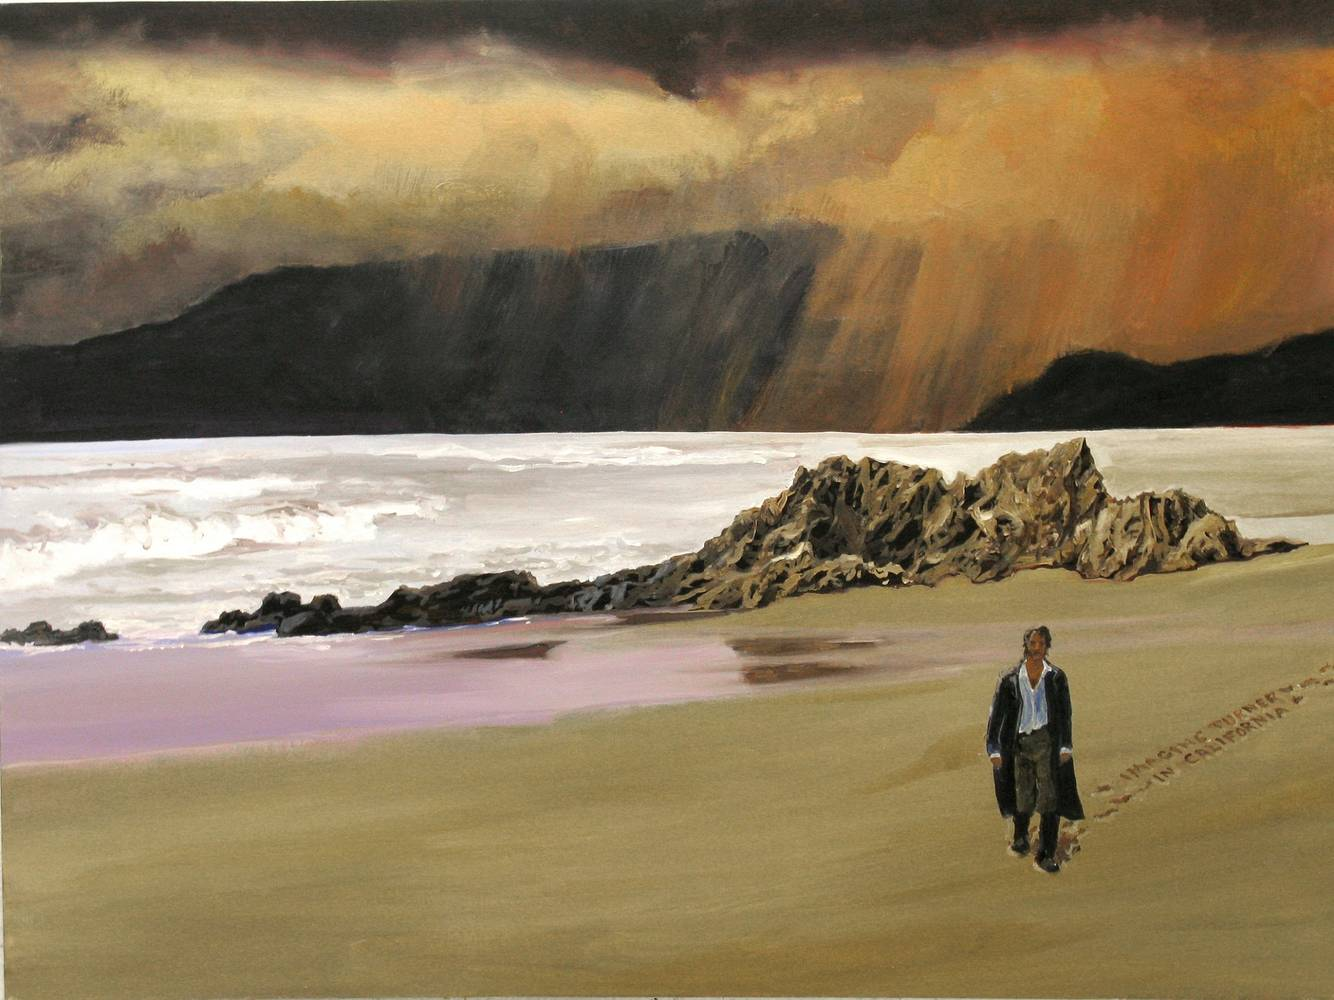 Oil painting Imagine Turner in California, 2012 by David  Maxim